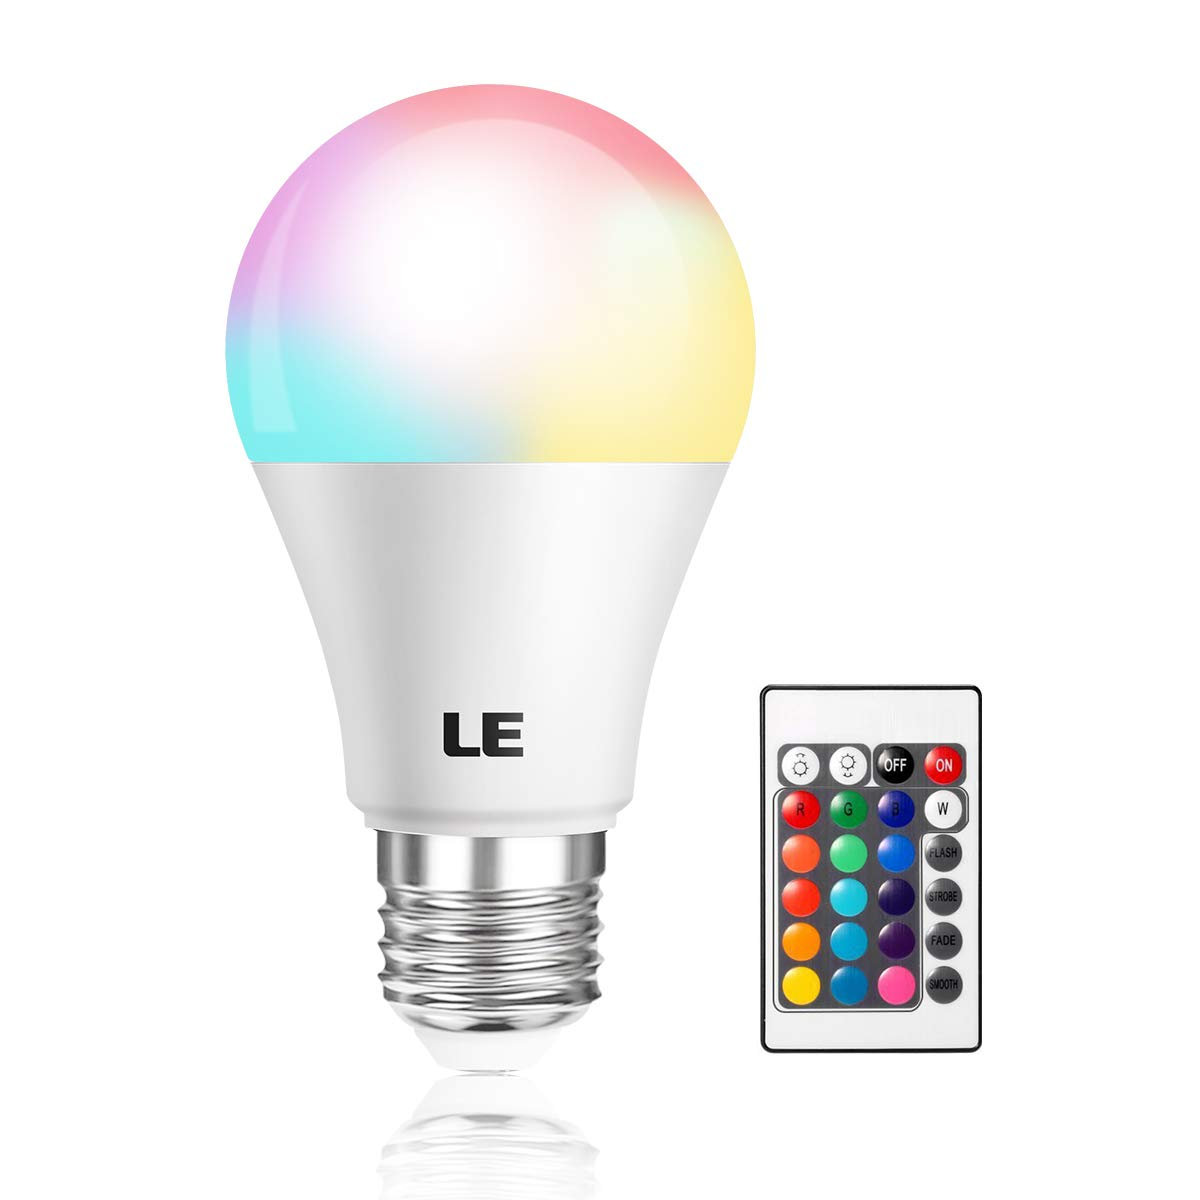 LE Color Changing Light Bulb with Remote, Dimmable LED Light Bulbs